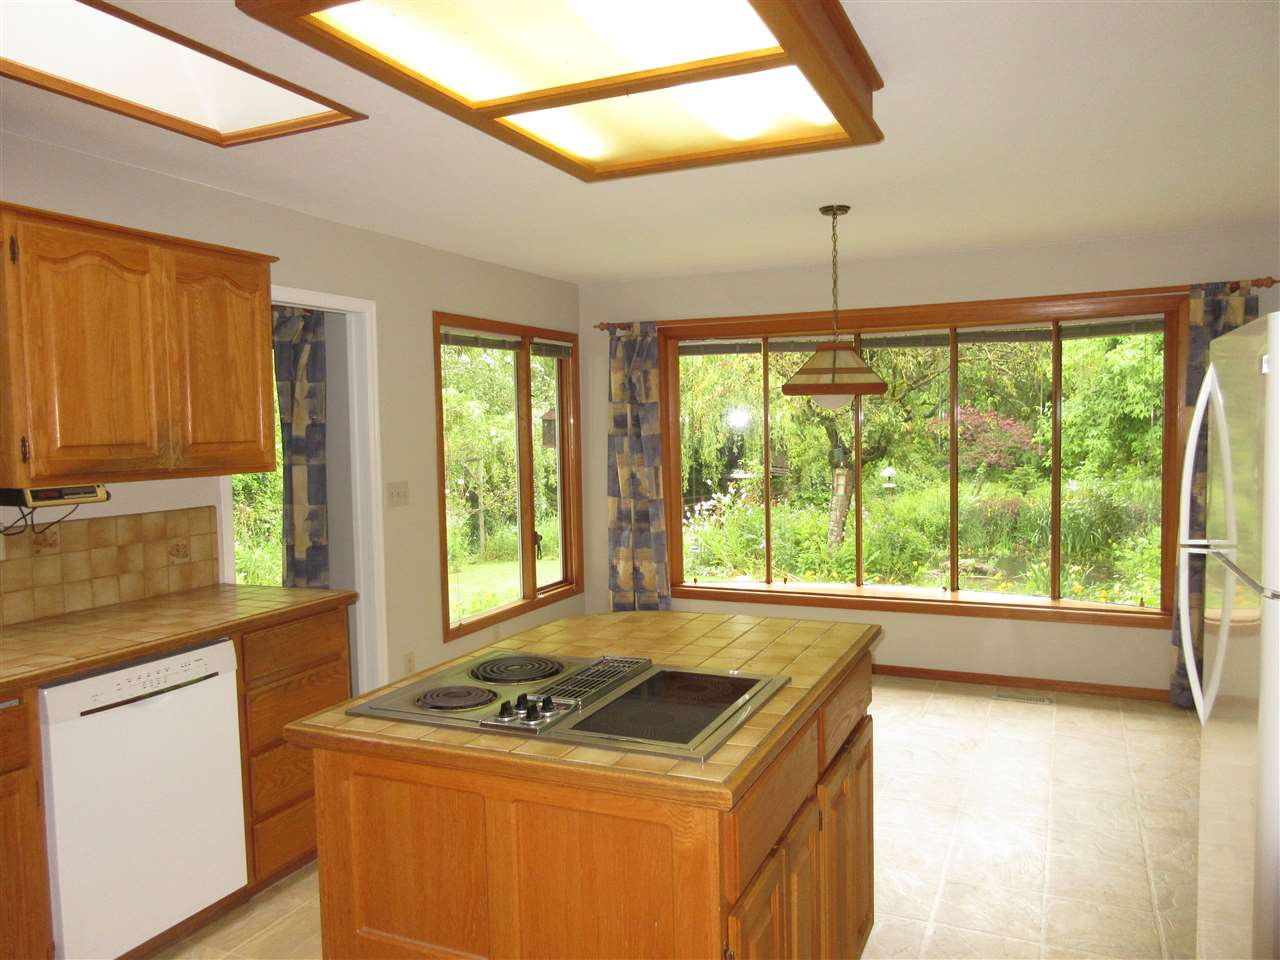 Photo 14: 45625 WORTHINGTON Place in Sardis: Sardis West Vedder Rd House for sale : MLS(r) # R2176017